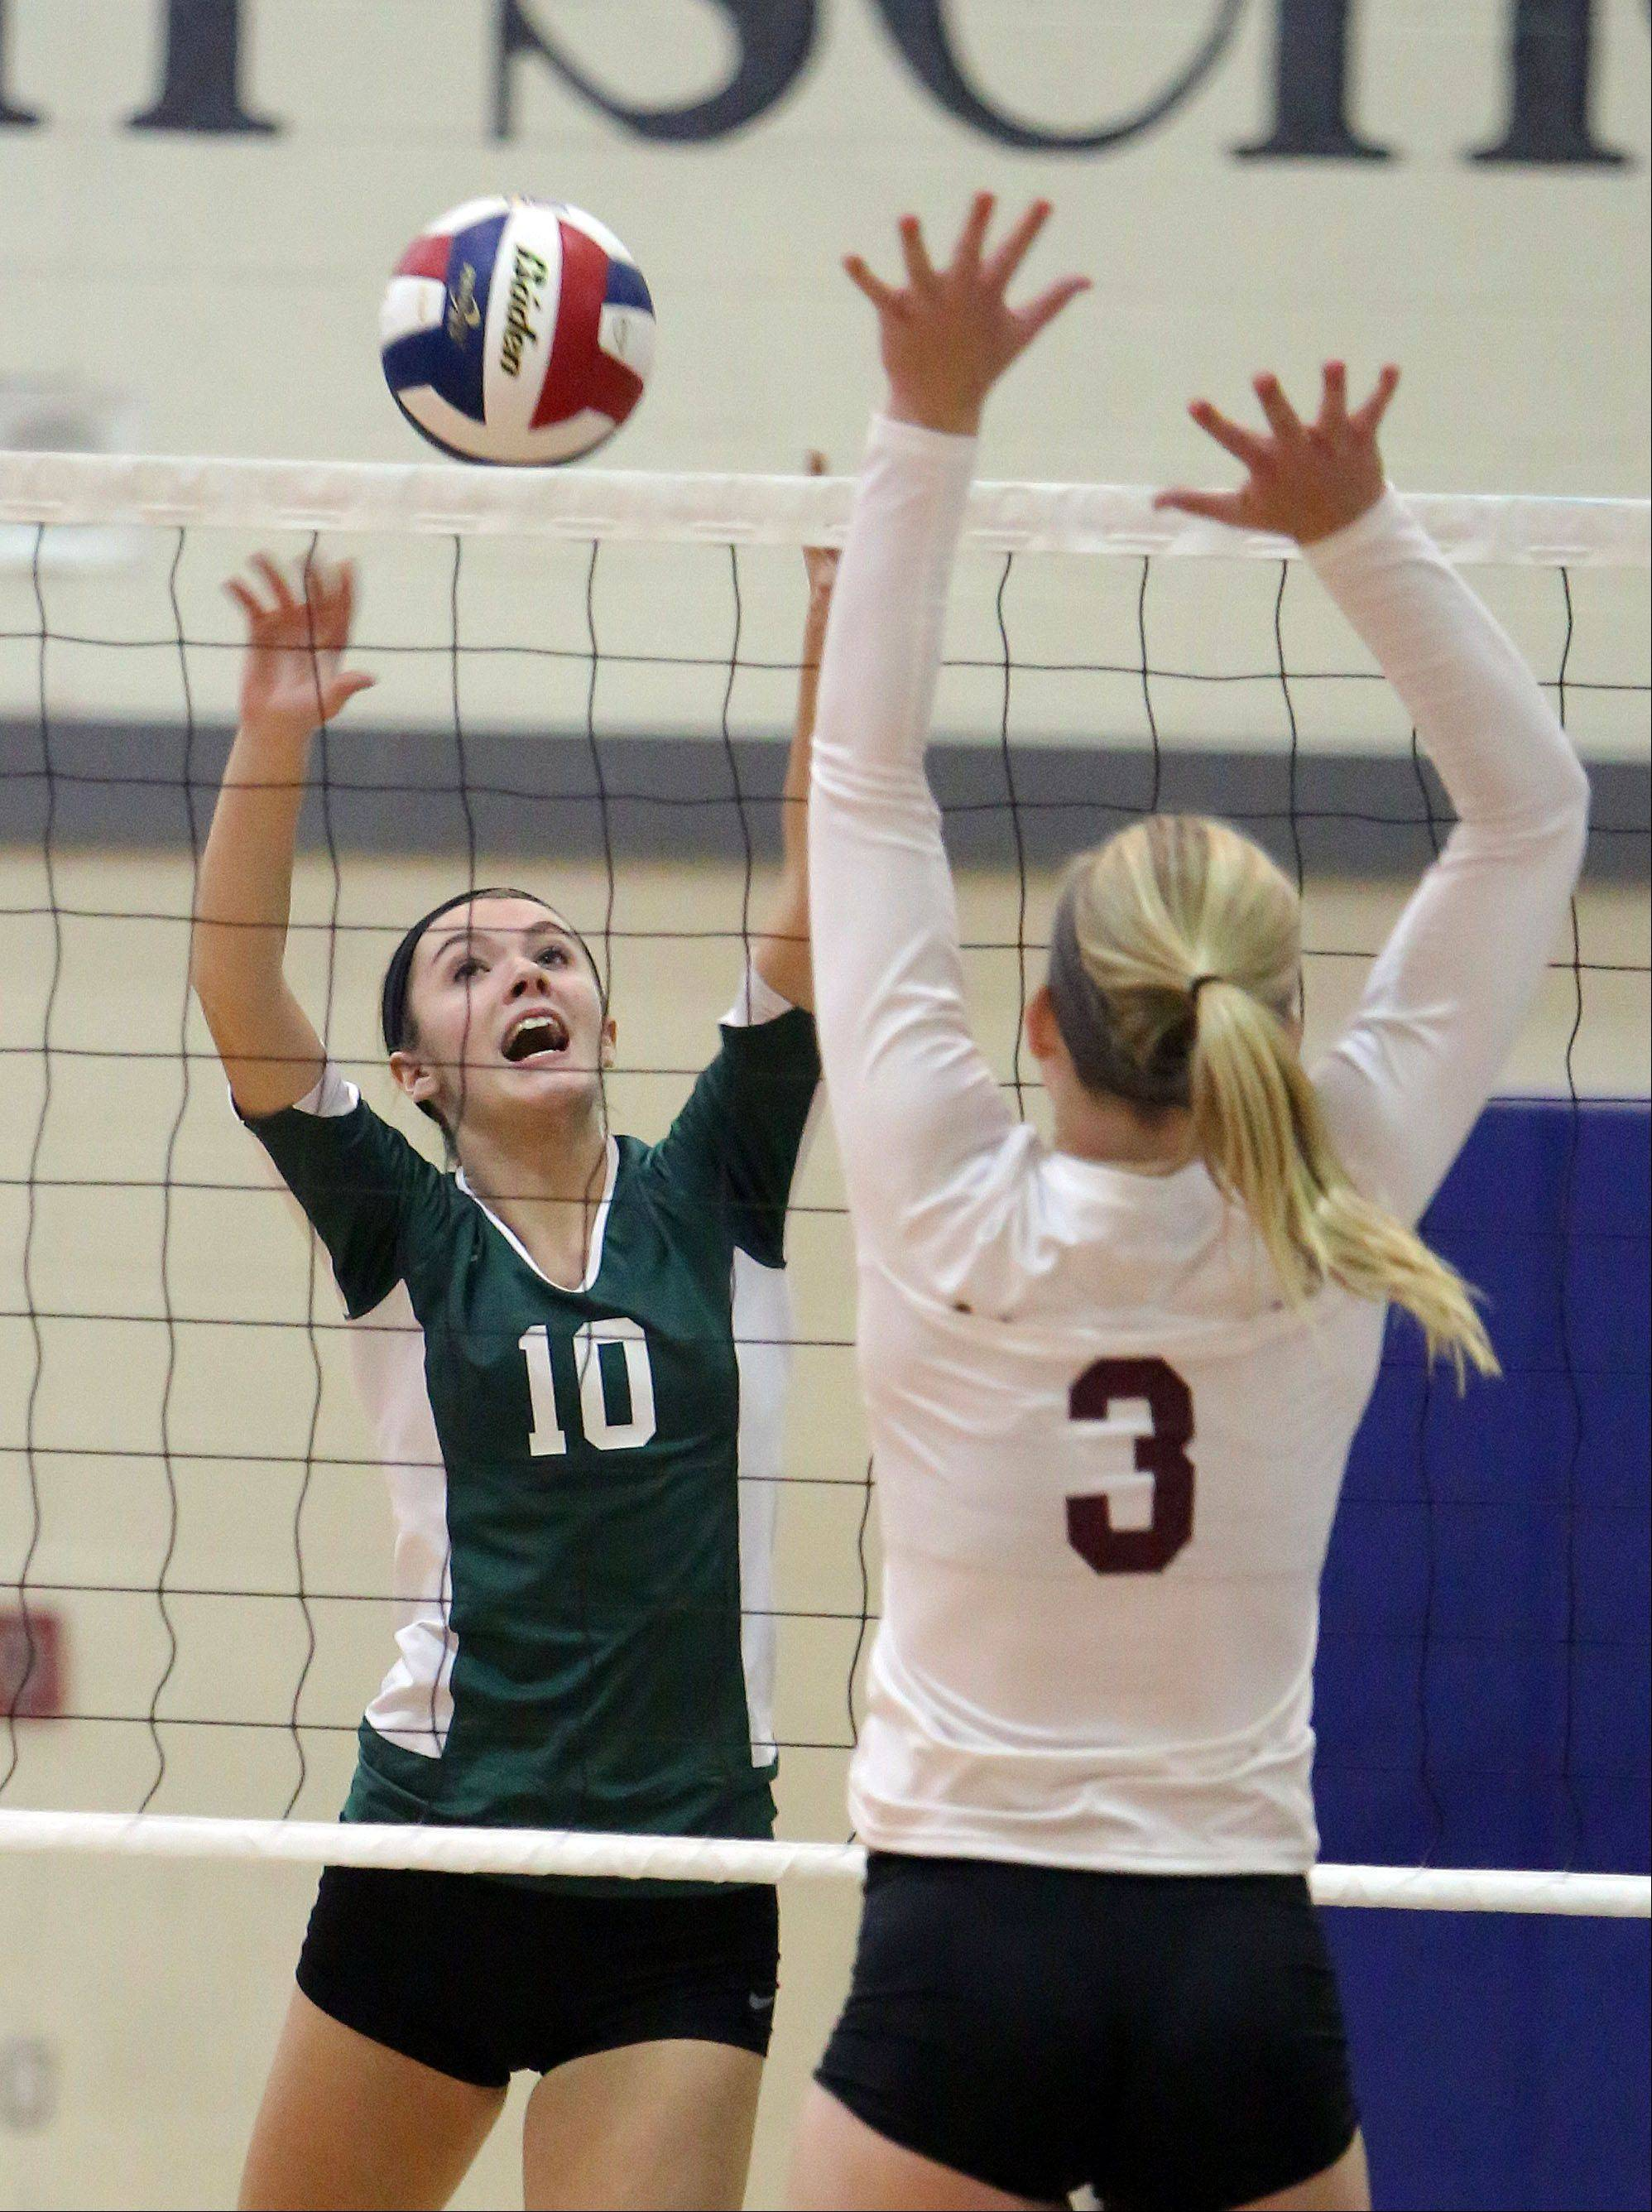 Grayslake Central's Allie Daul, left, and Antioch's Madeline Johnson meet at the net during the girls regional semifinal volleyball game Tuesday at Lakes.